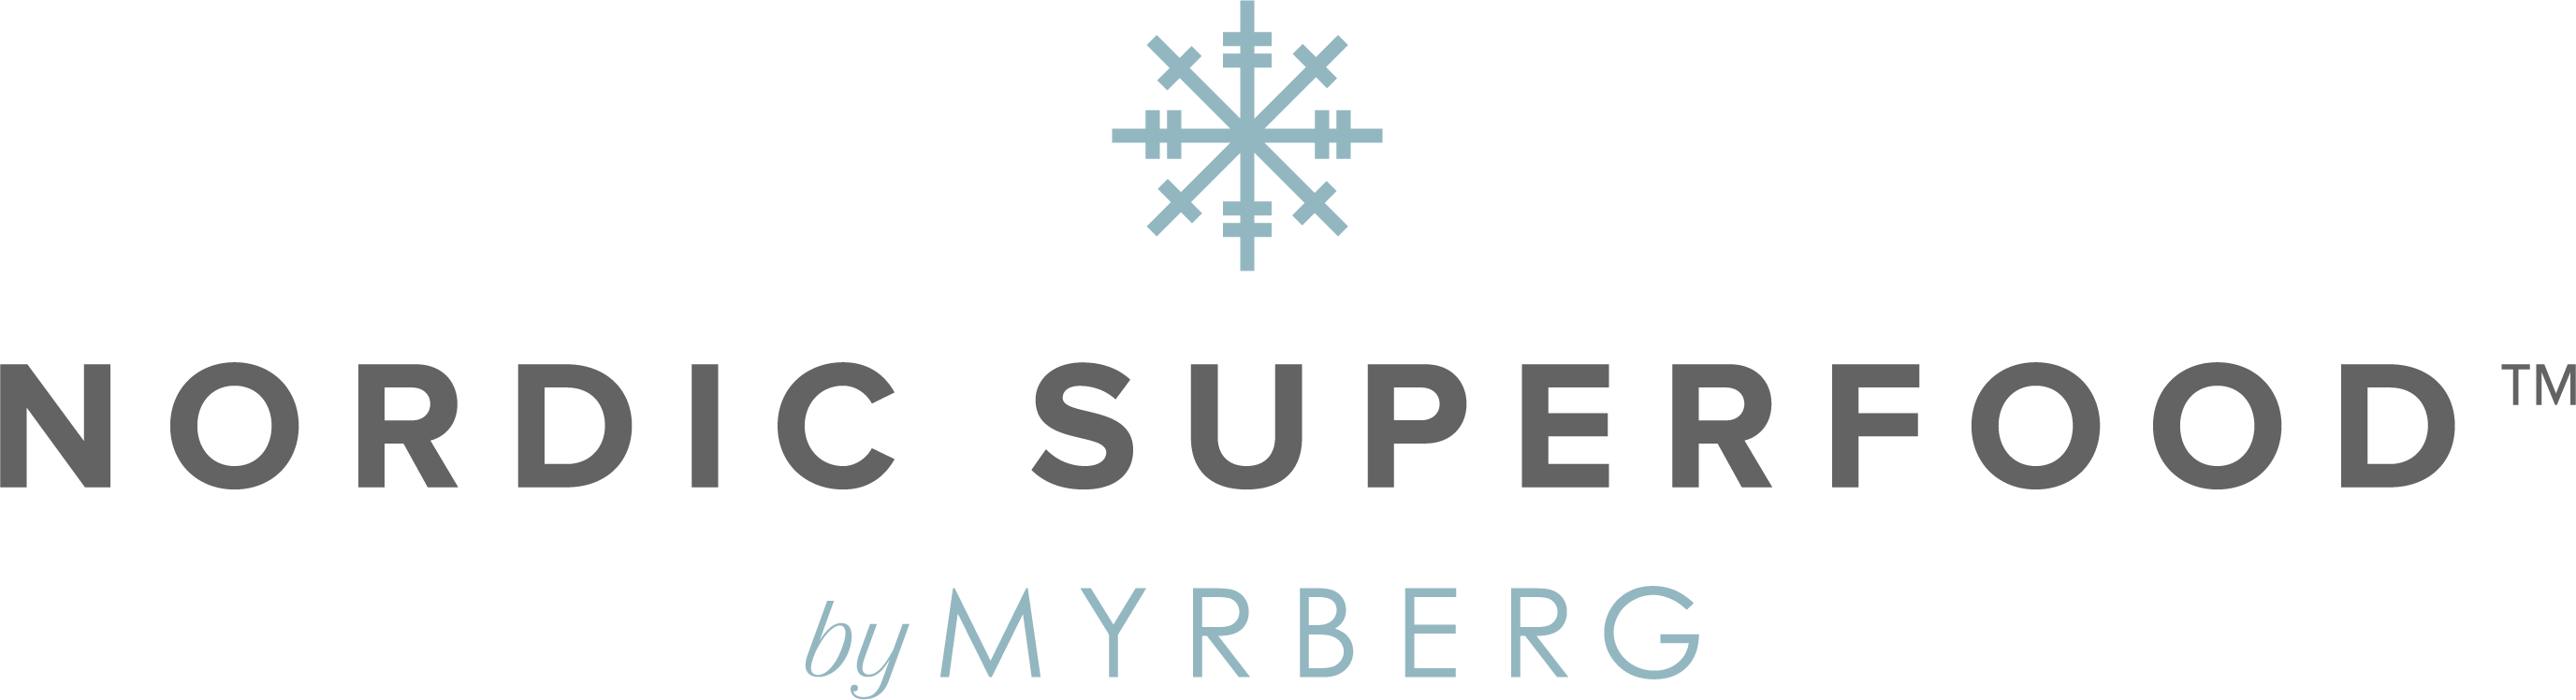 nordicsuperfood-bymyrberg-cosmetic-logotype